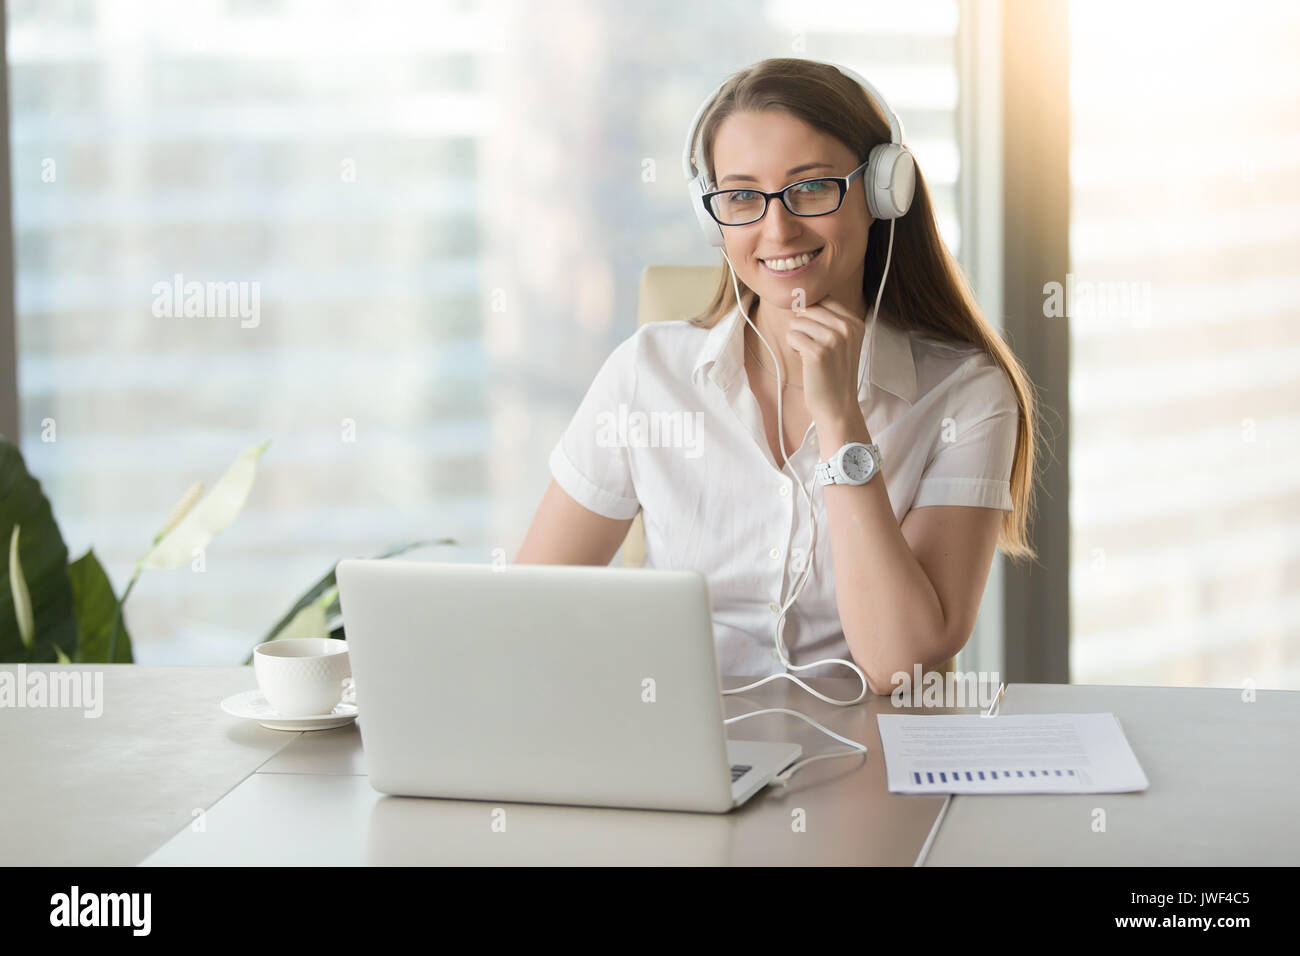 Smiling businesswoman wearing Headphones with laptop posing at w Photo Stock